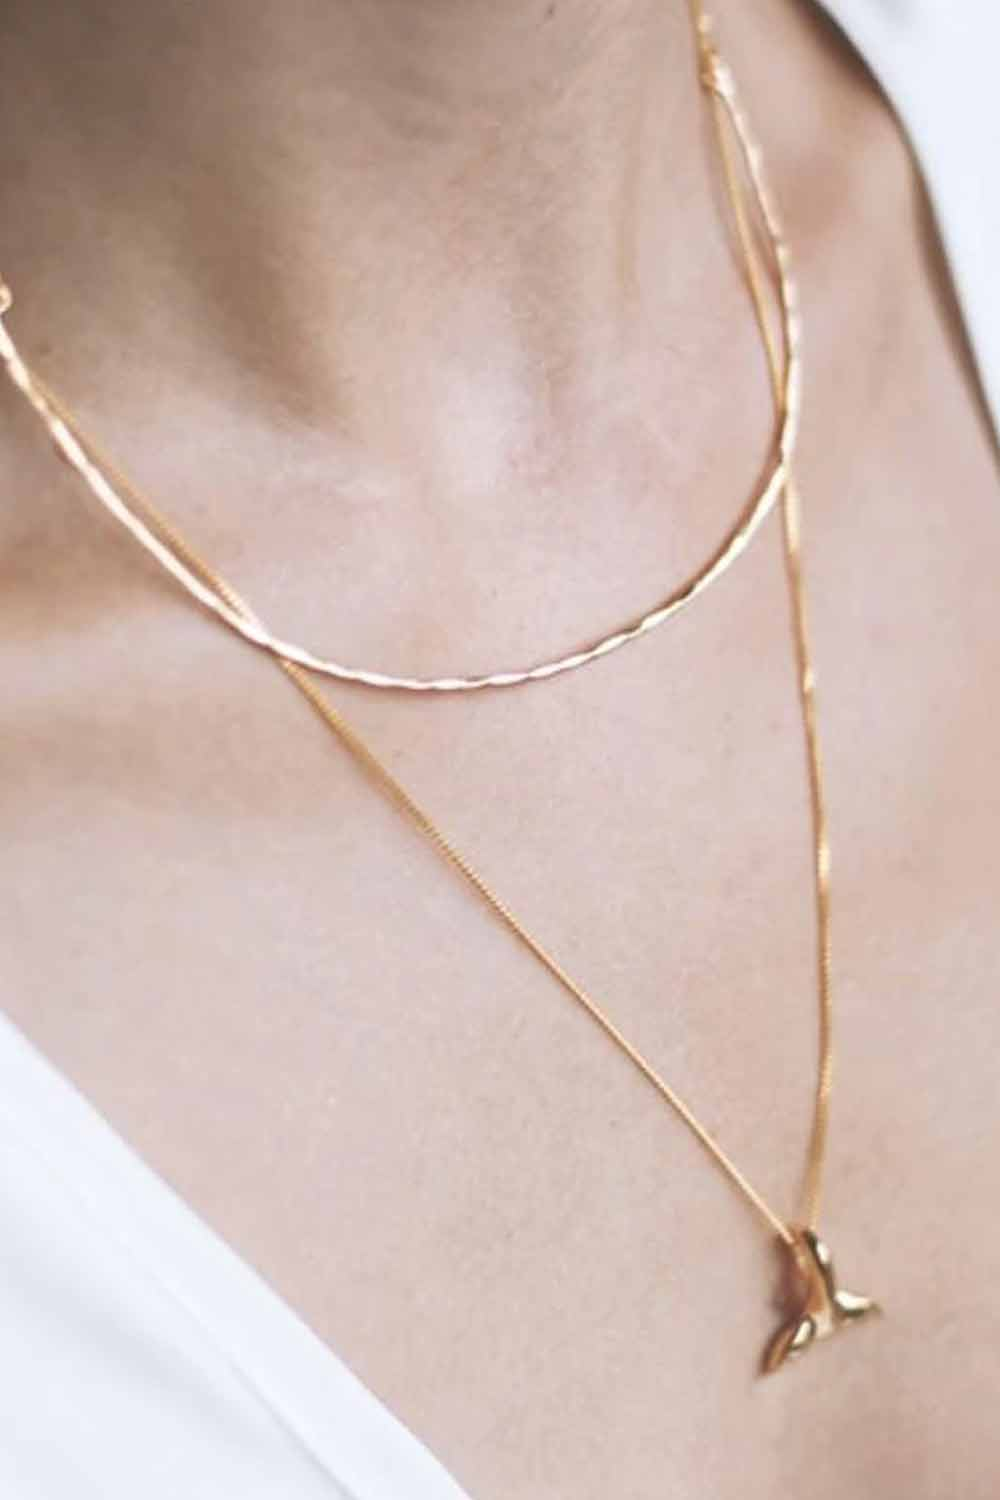 Bonito Jewelry ~ Melbourne Necklace Choker in Gold